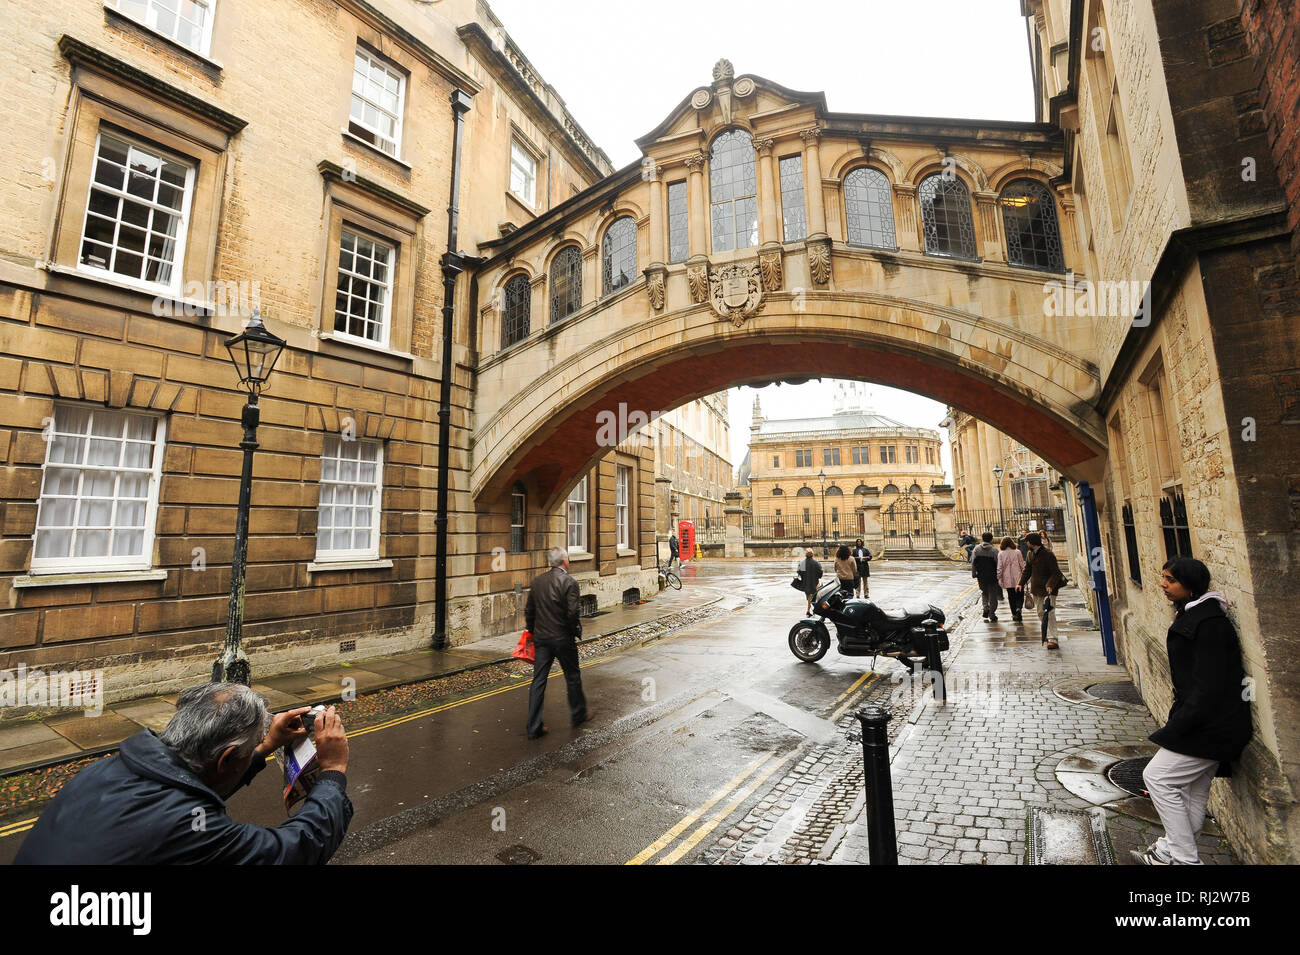 Bridge of Sighs (Hertford Bridge) over New College Lane, Hertford College, University of Oxford one of the oldest universities in the world. Historic  - Stock Image